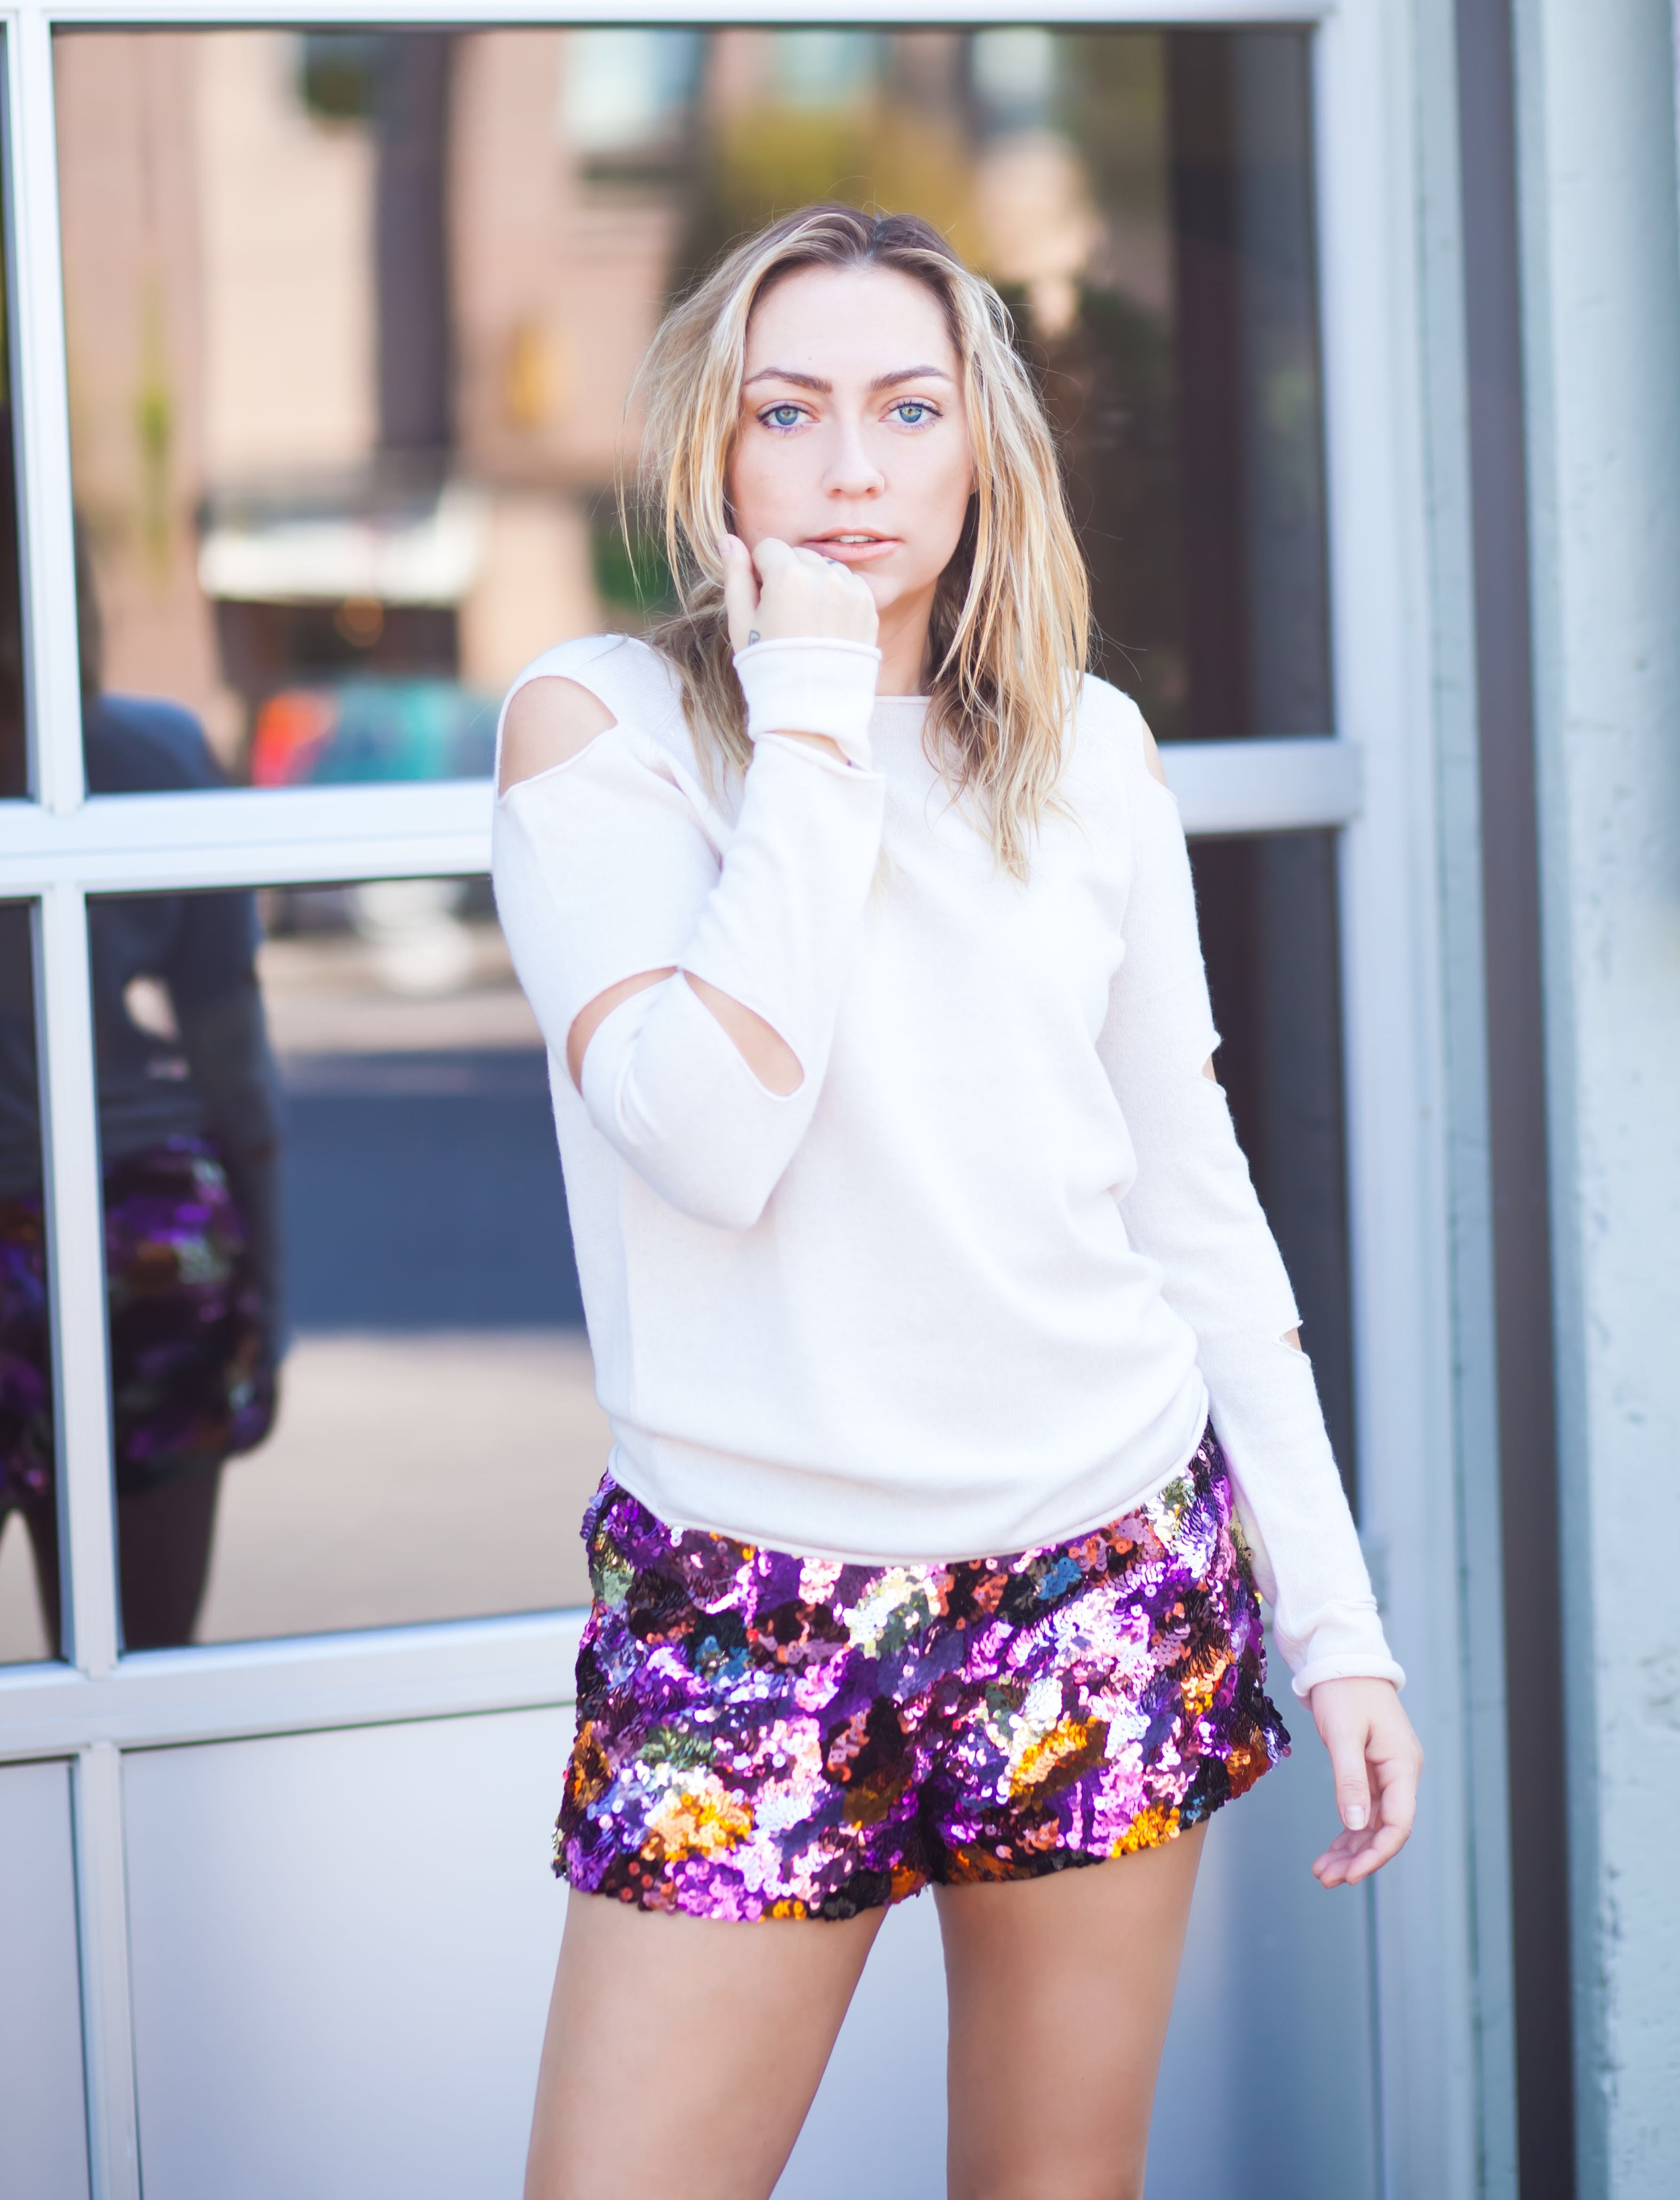 Sweater - Skull Cashmere | Shorts - Valley City | Shoes - Miista ||  photos by Mandy Mooring